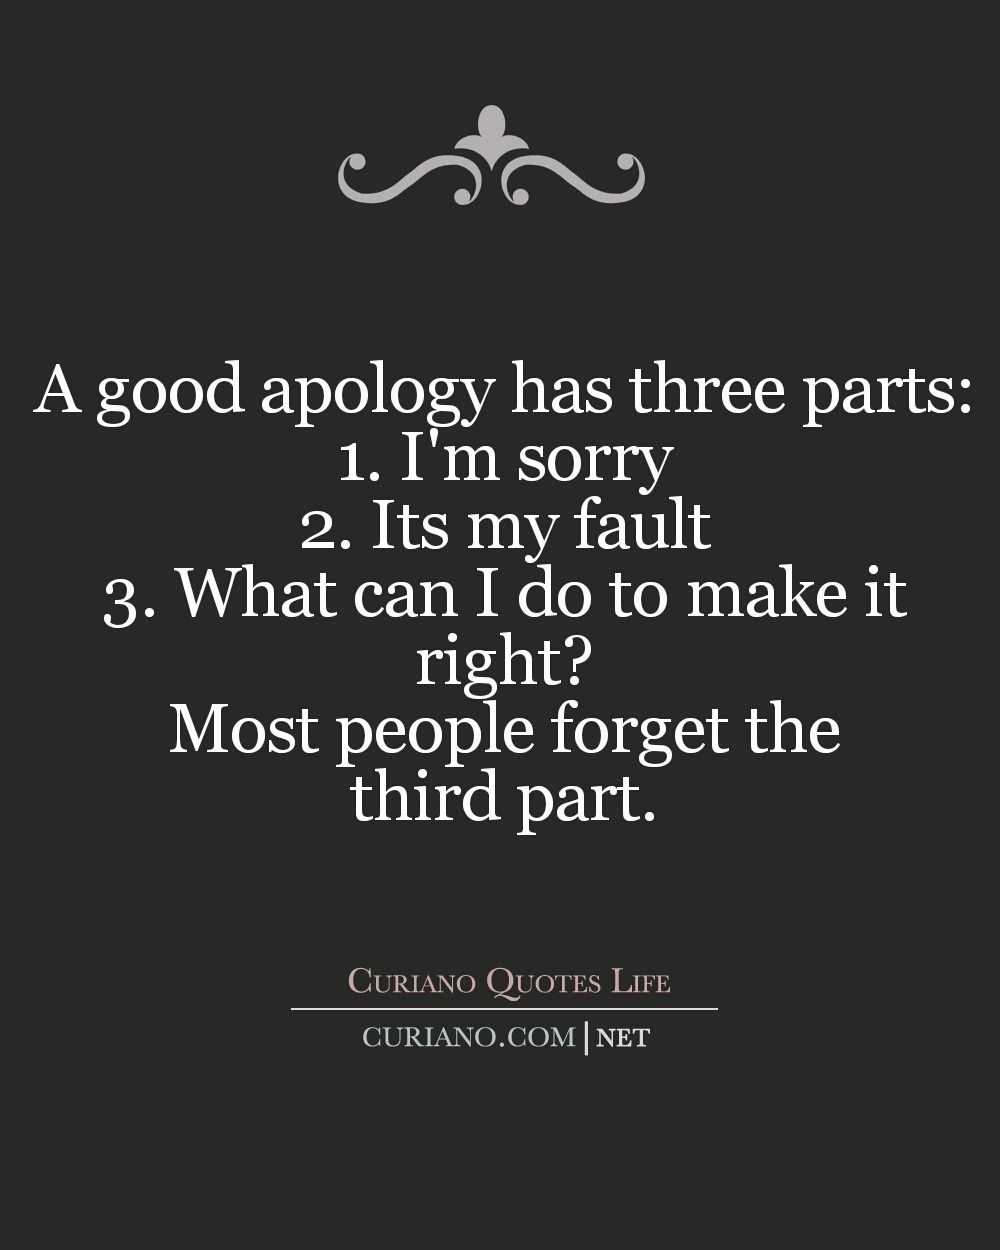 This Blog Curiano Quotes Life Shows Quotes Best Life Quote Life Quotes Love Quotes Moving On Apologizing Quotes Life Quotes Daily Inspiration Quotes